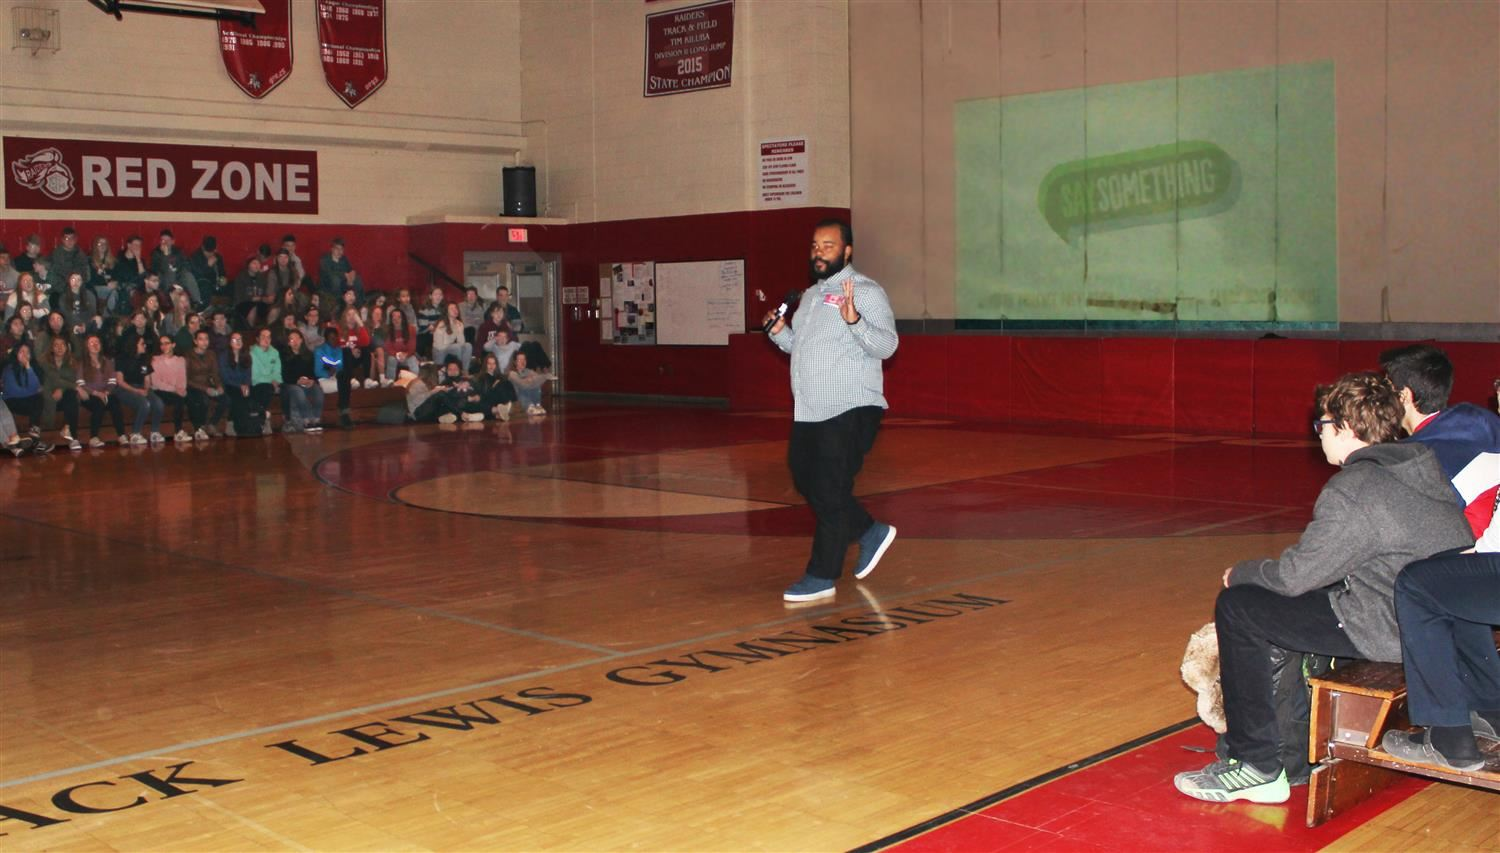 Sandy Hook Promise Presenter speaks to Red Hook High School students.